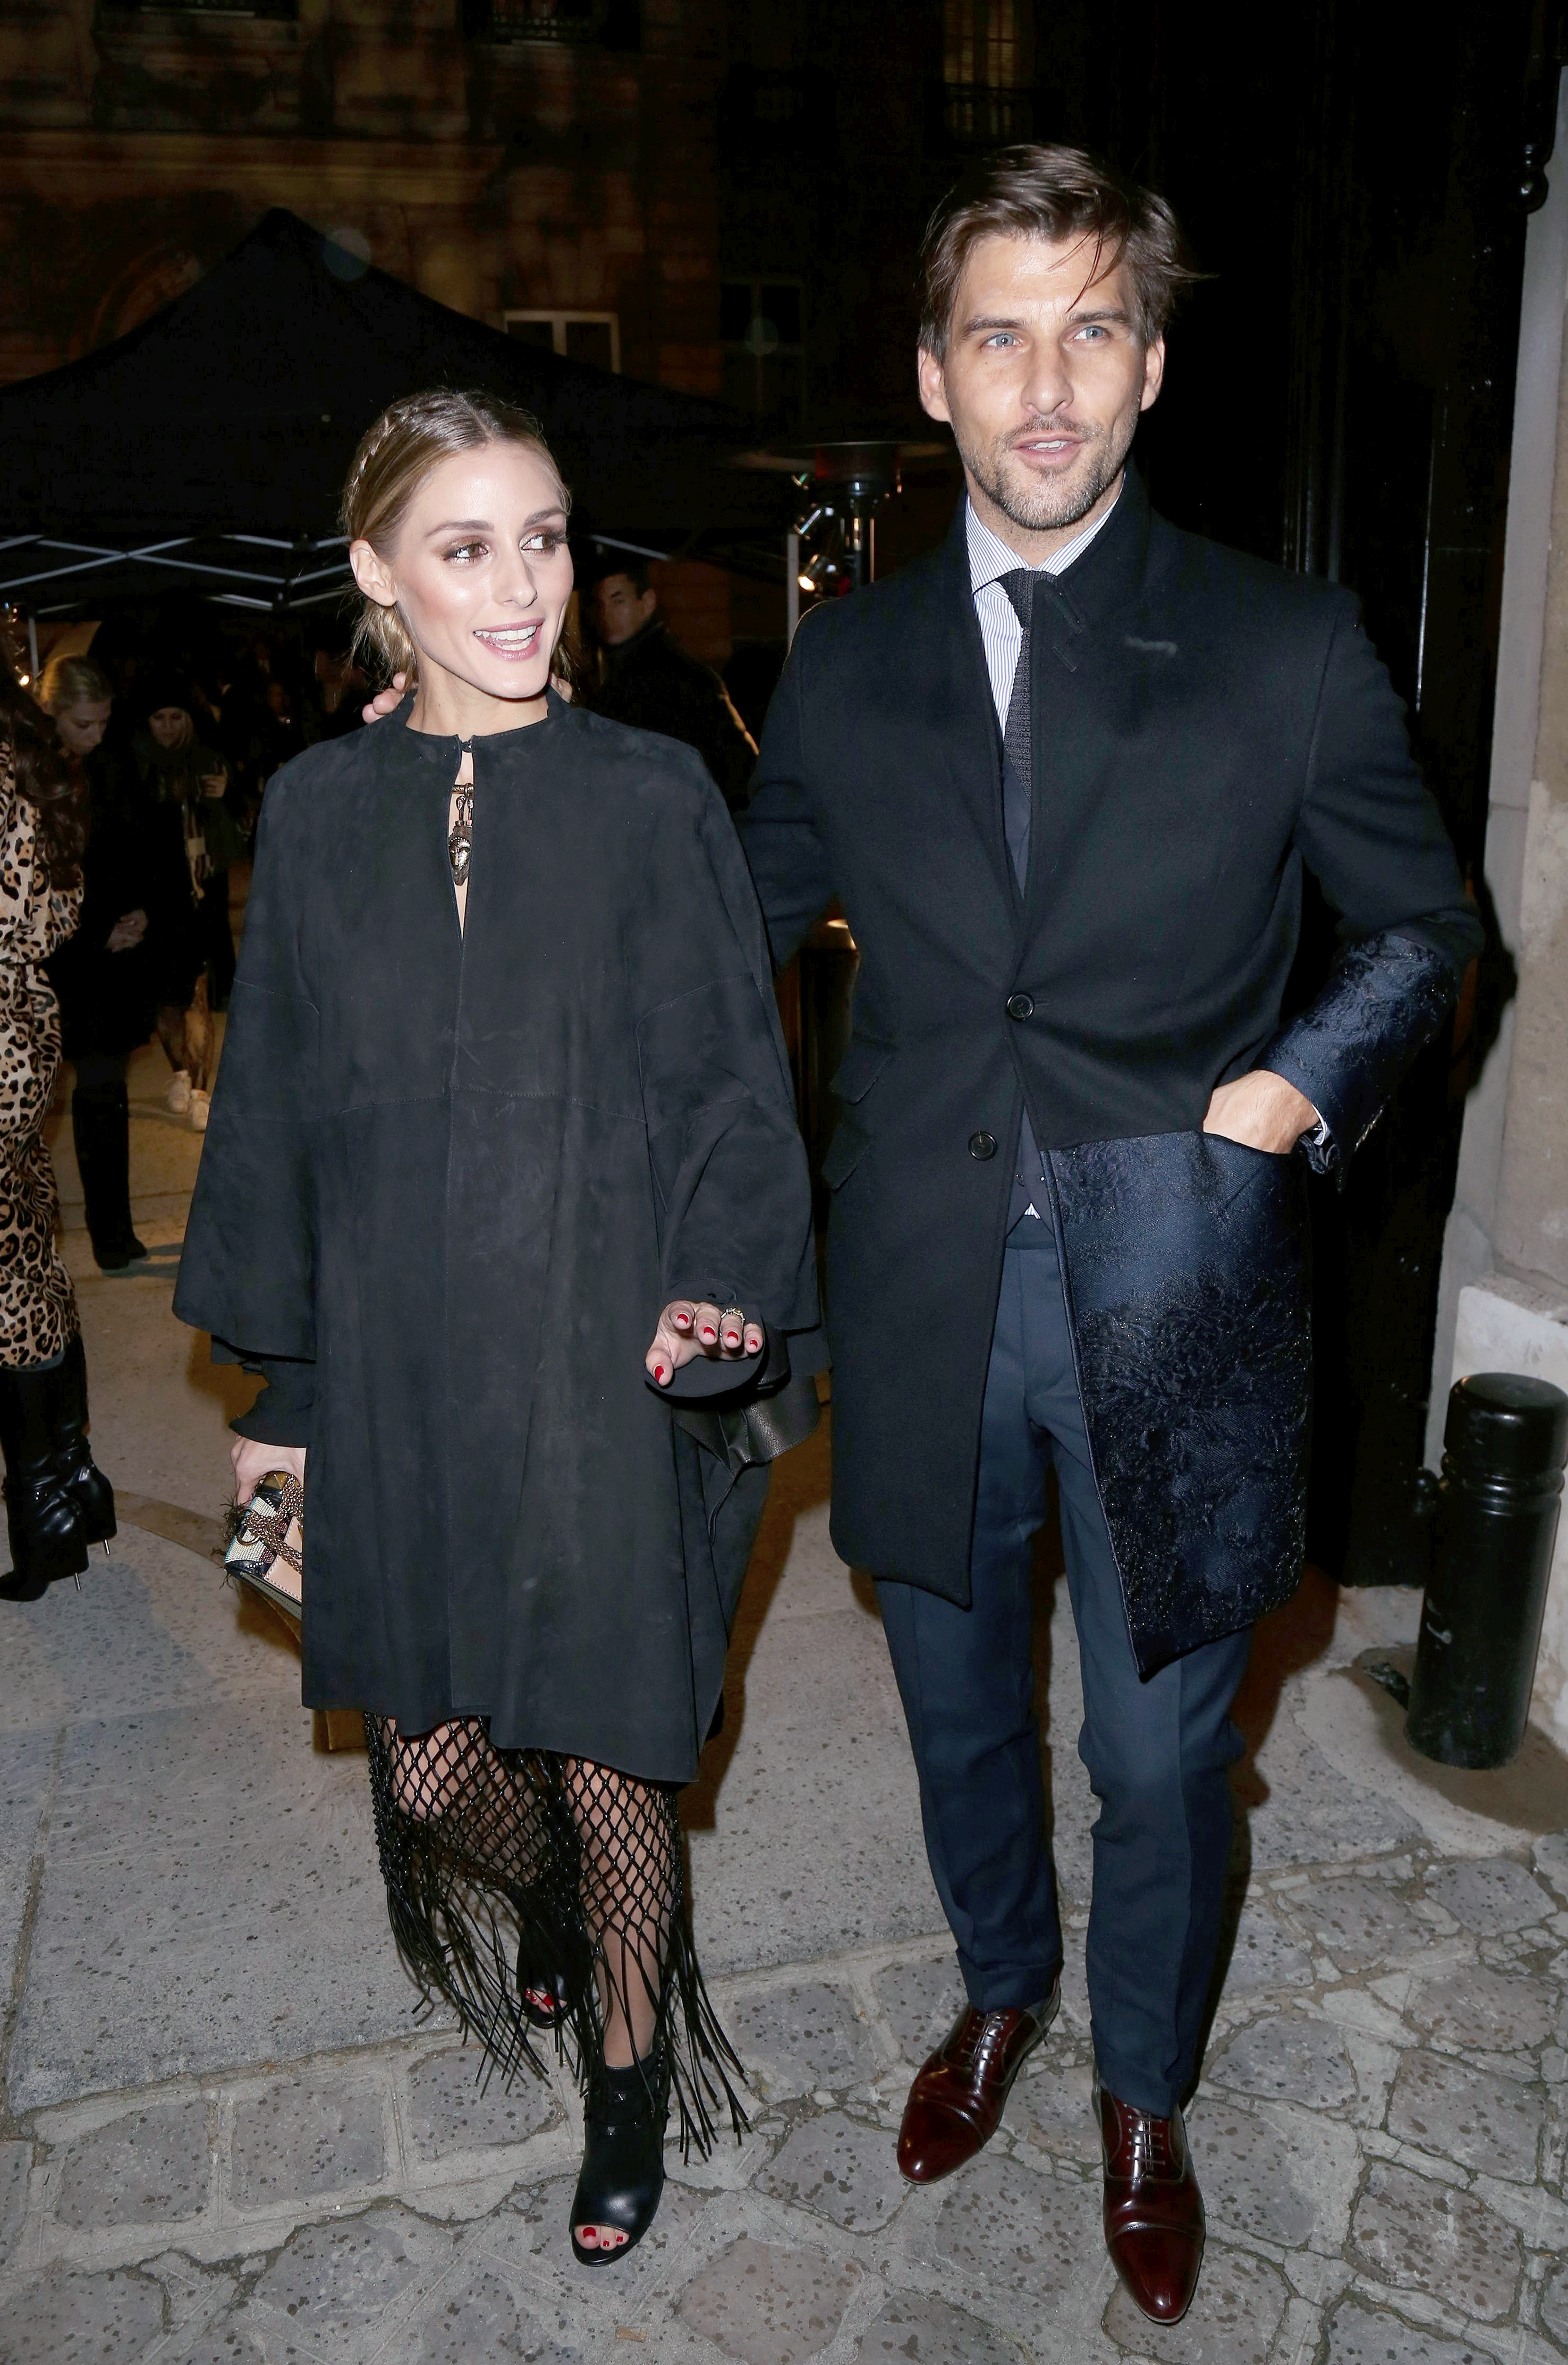 Olivia Palermo and Johannes Huebl at the Valentino Haute Couture fashion show during Paris Fashion Week. January 27, 2016 X17online.com USA ONLY